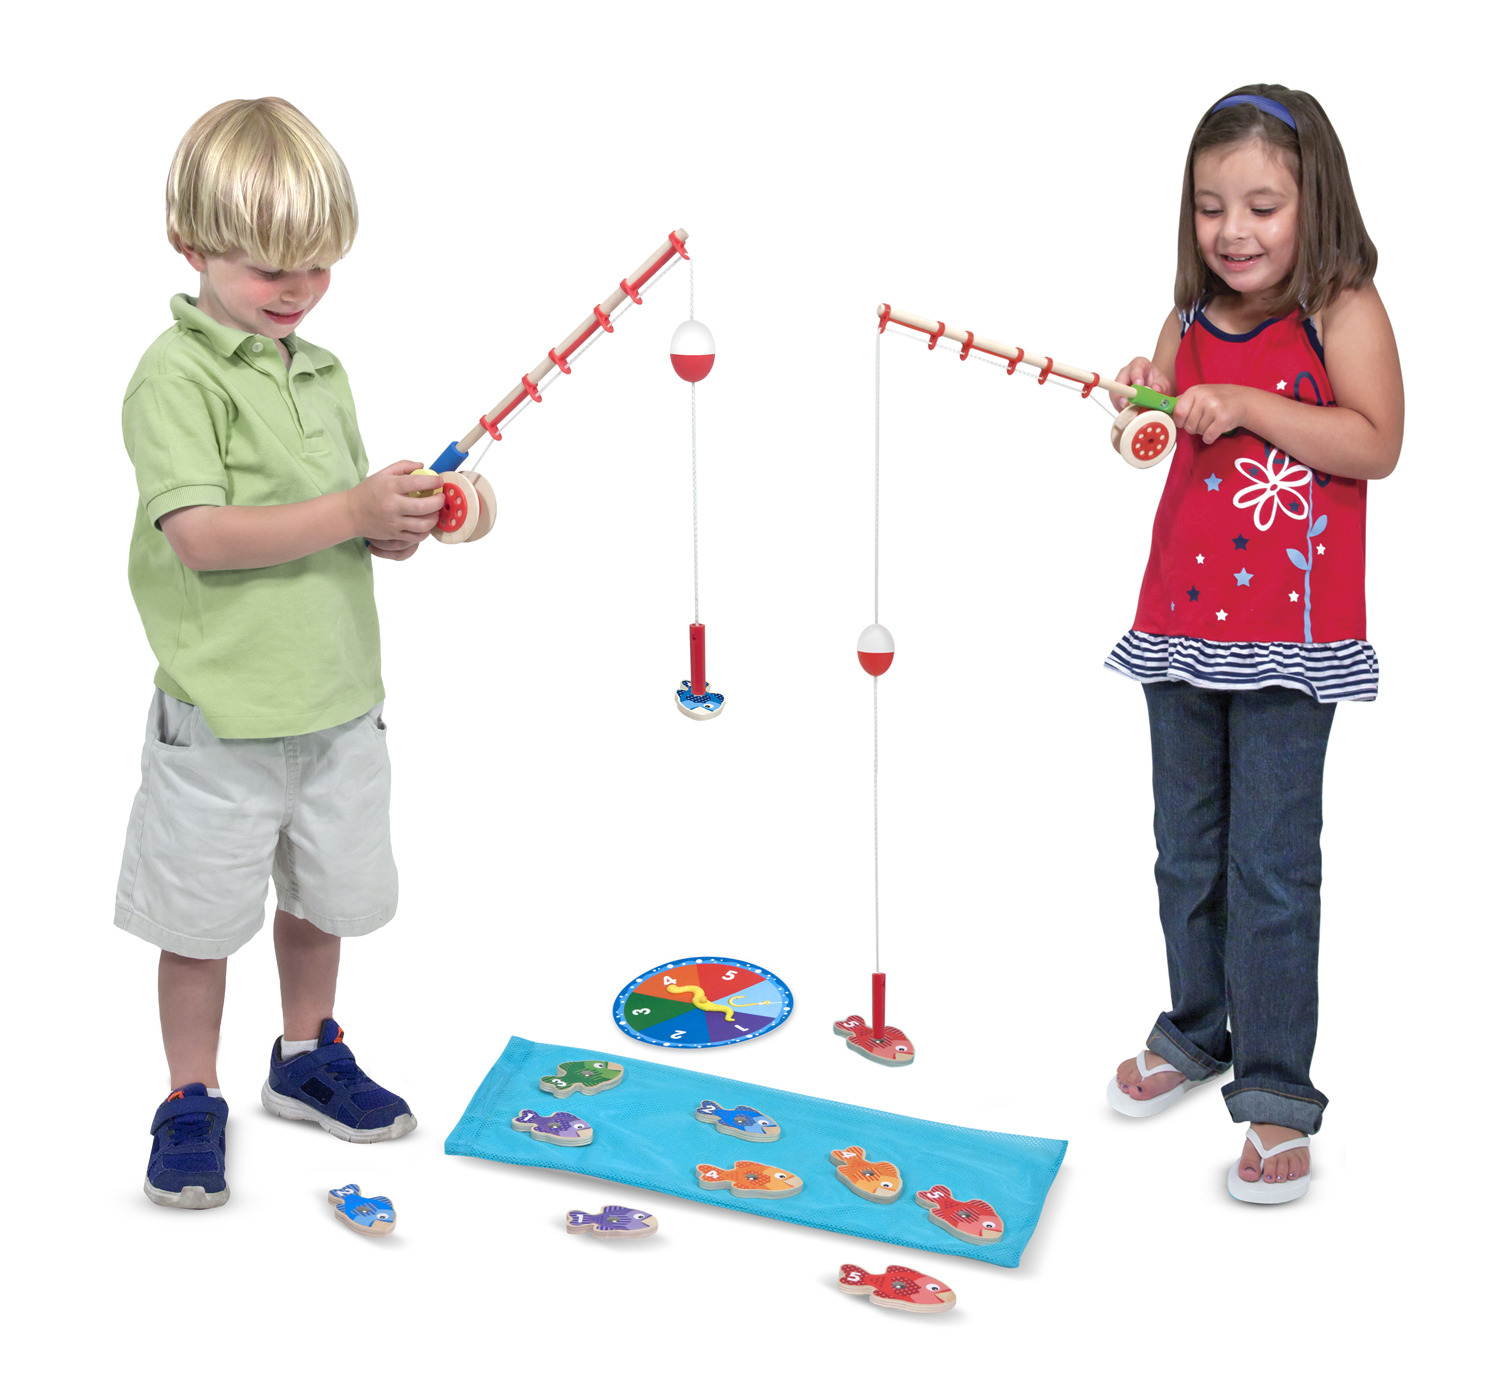 Melissa  and  Doug - Catch  and  Count Fishing Game (15149) - Melissa And Doug - Brætspil -  - 0000772151498 -